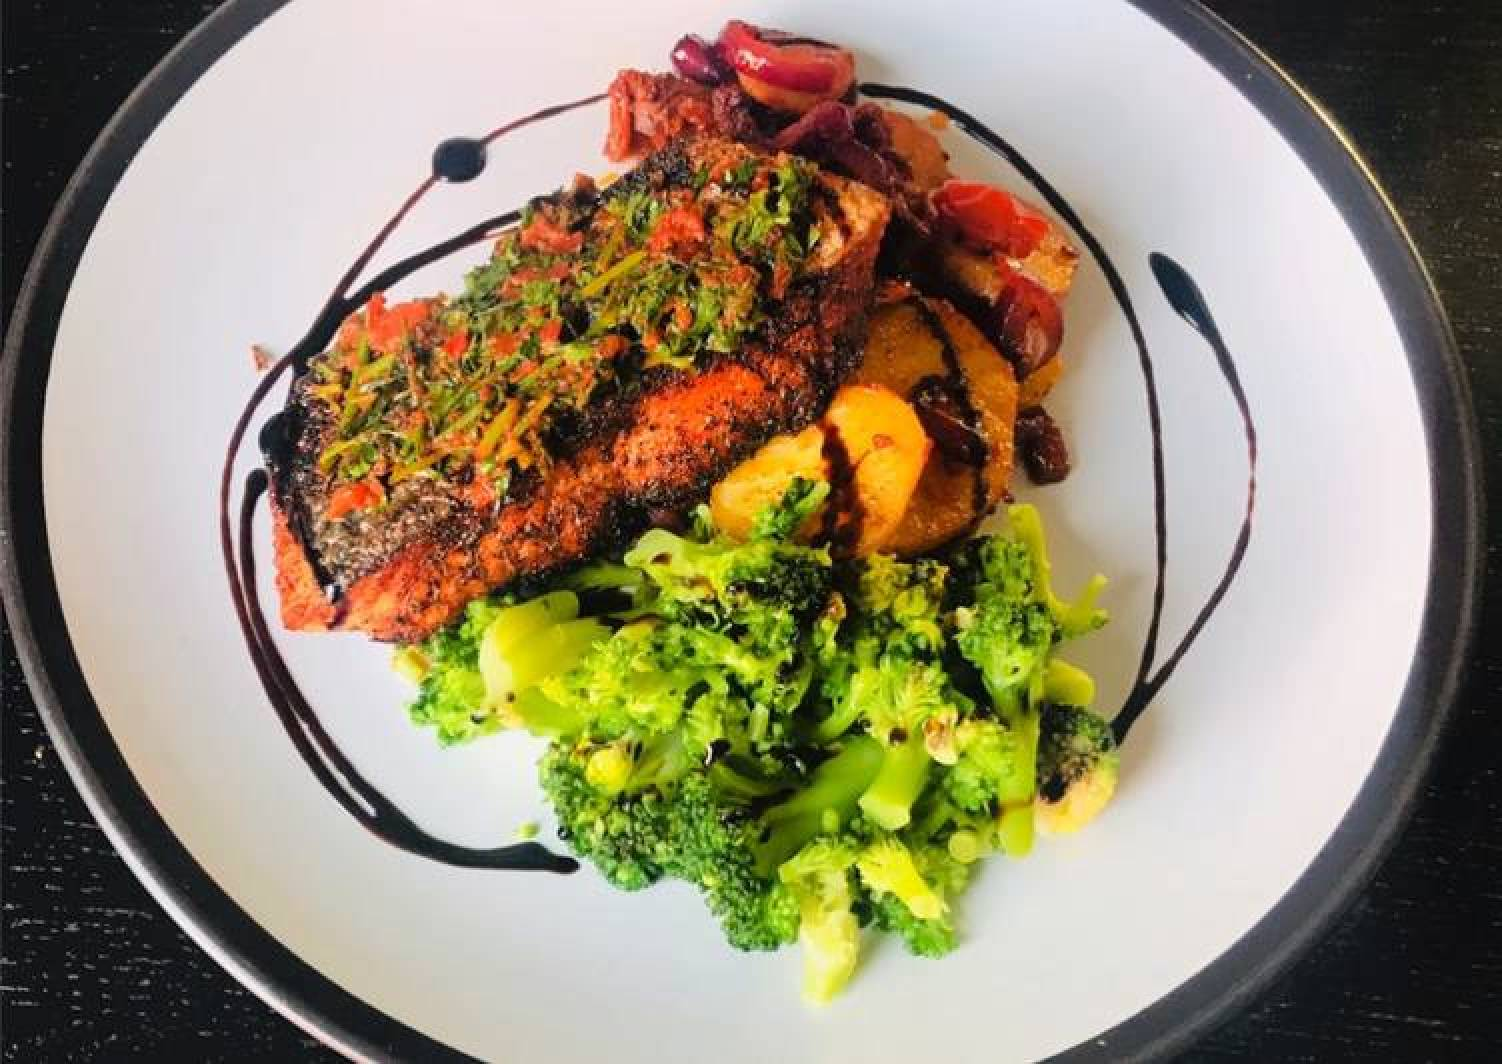 Charred Salmon Fillet with Tomato+Onion Relish Potatoes and Blanched Broccoli